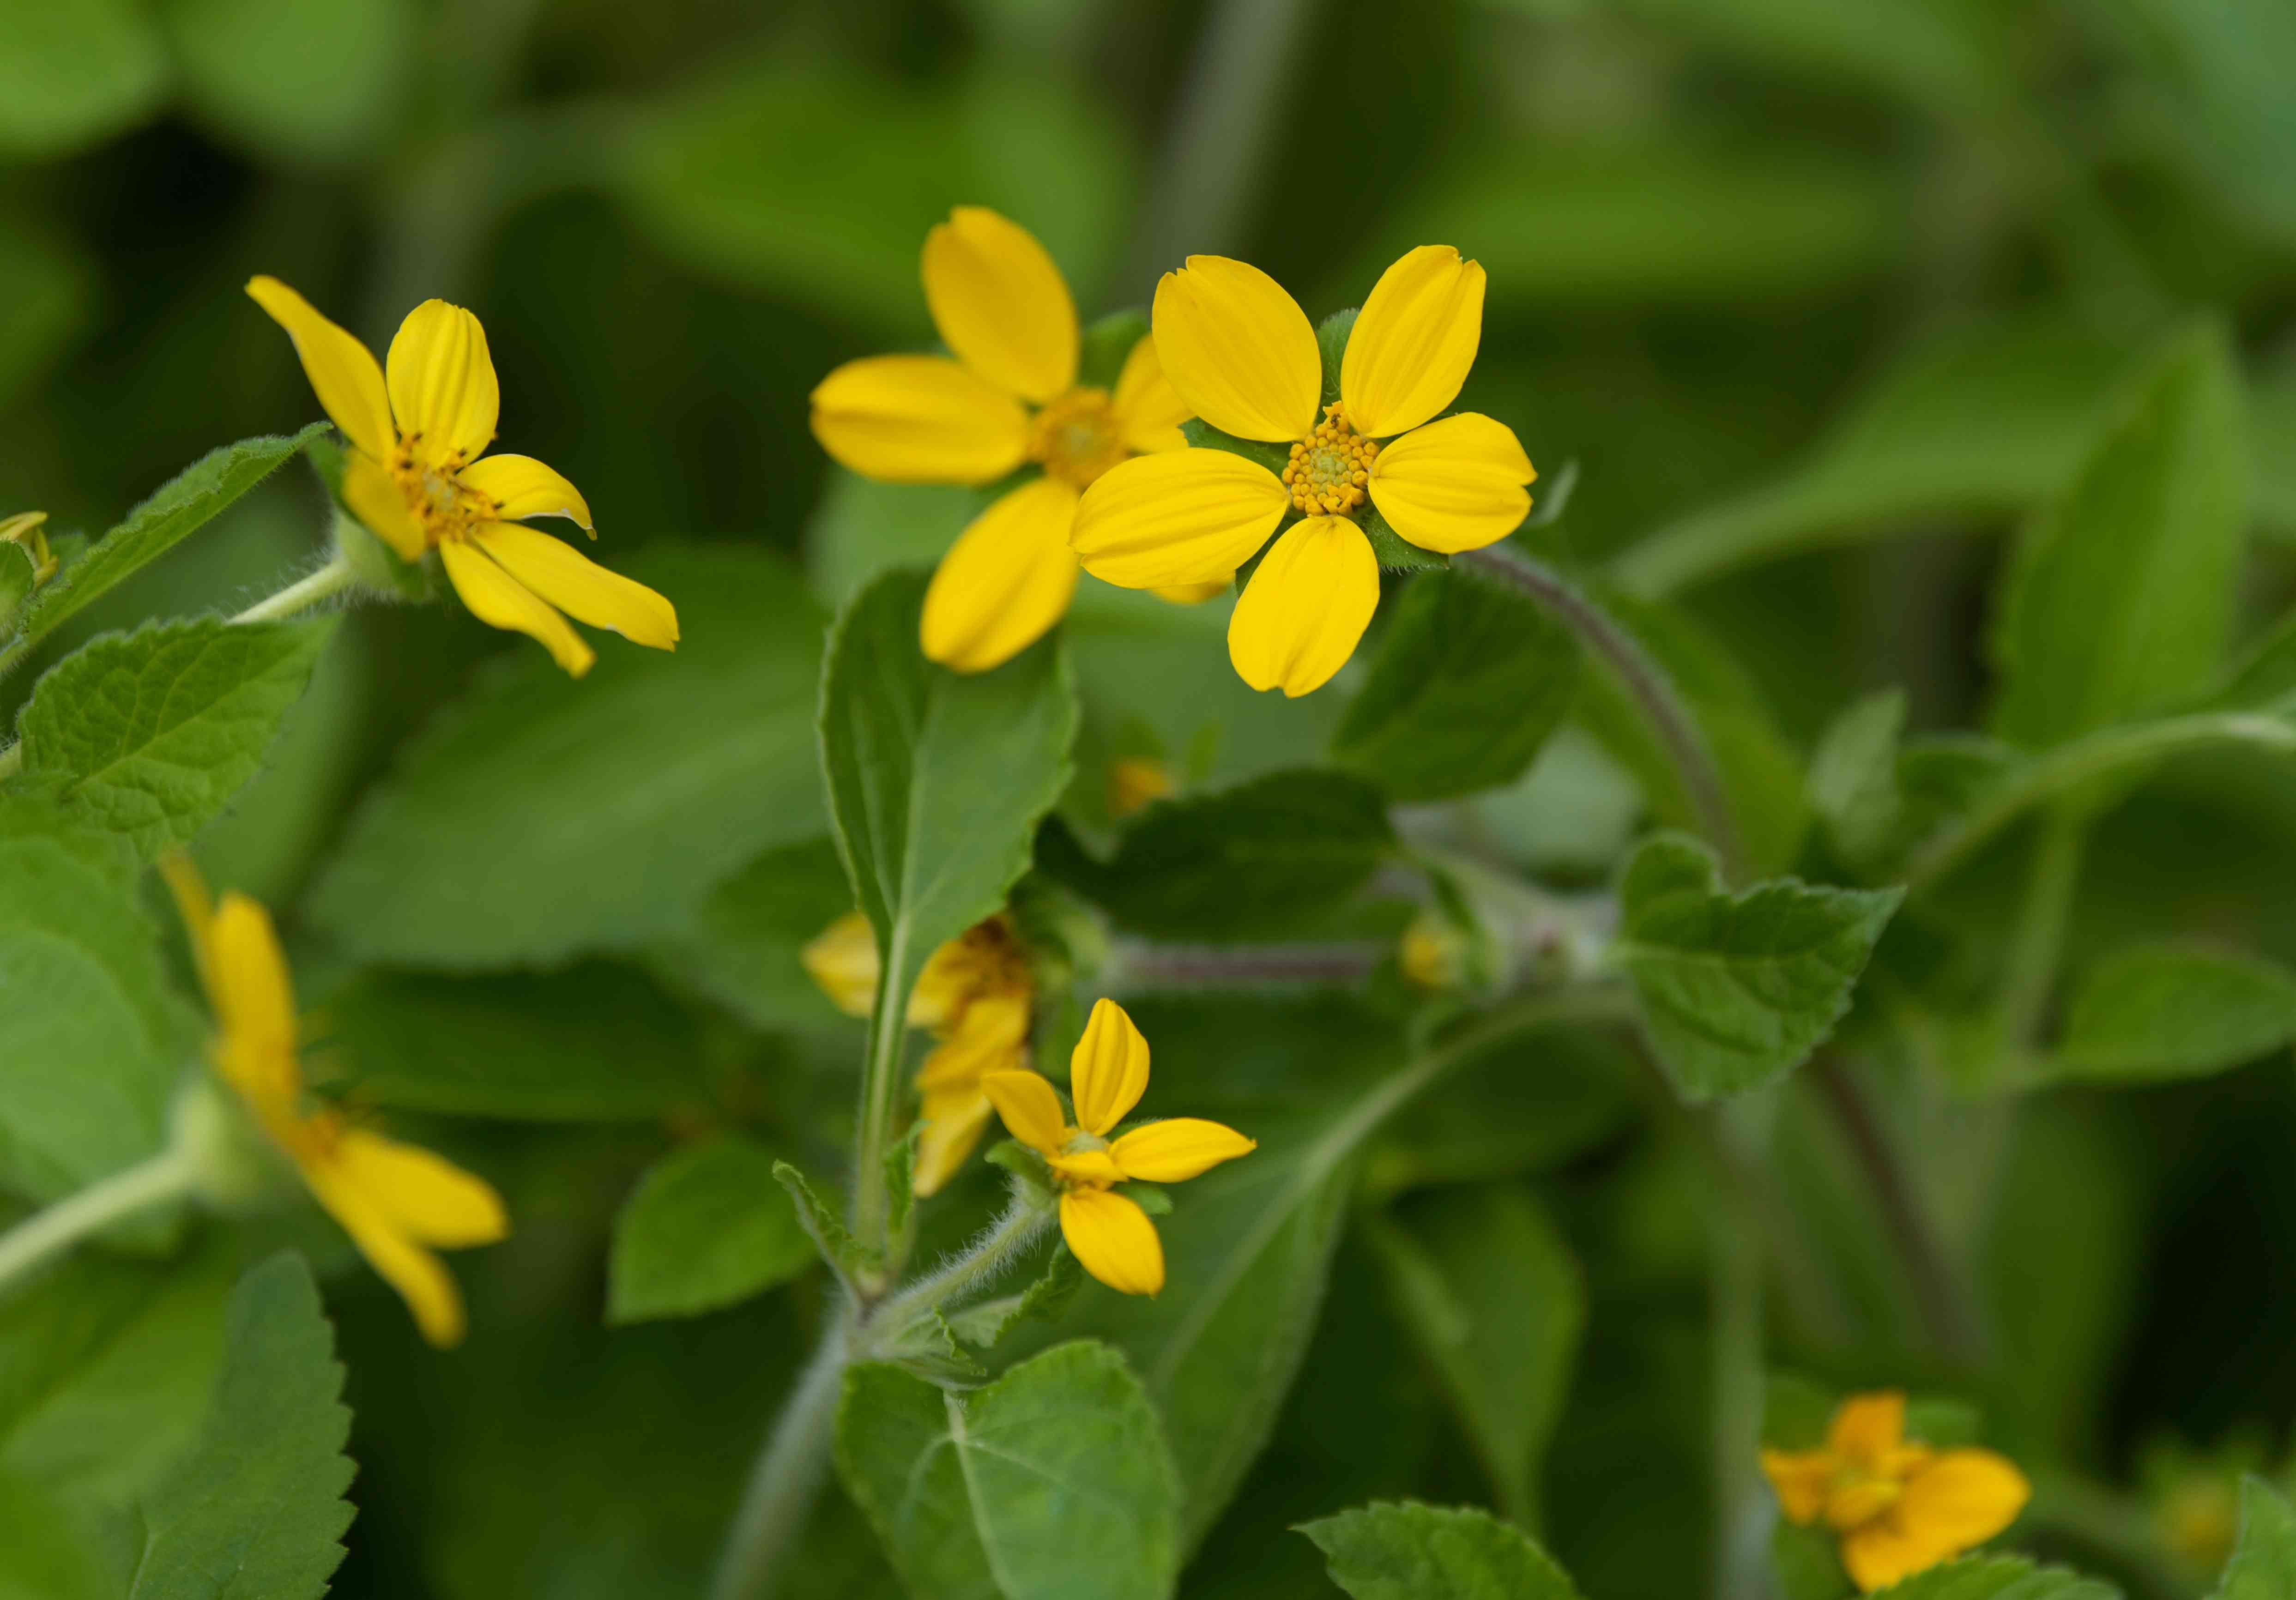 Goldenstar plant with yellow star-shaped flowers on stems closeup